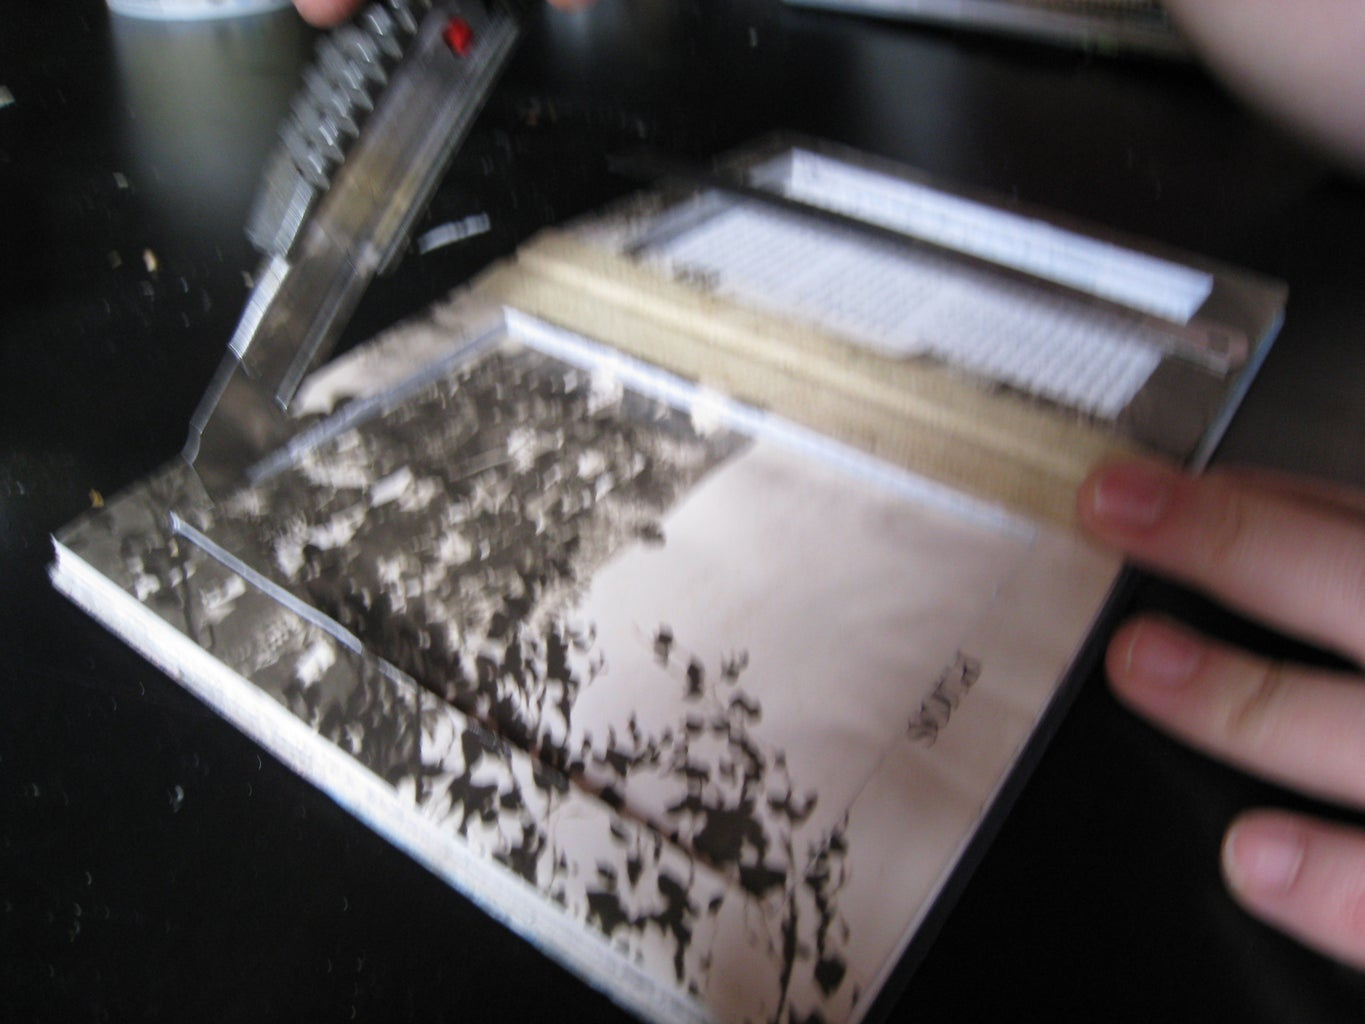 Glue All the Pages Together and Cut